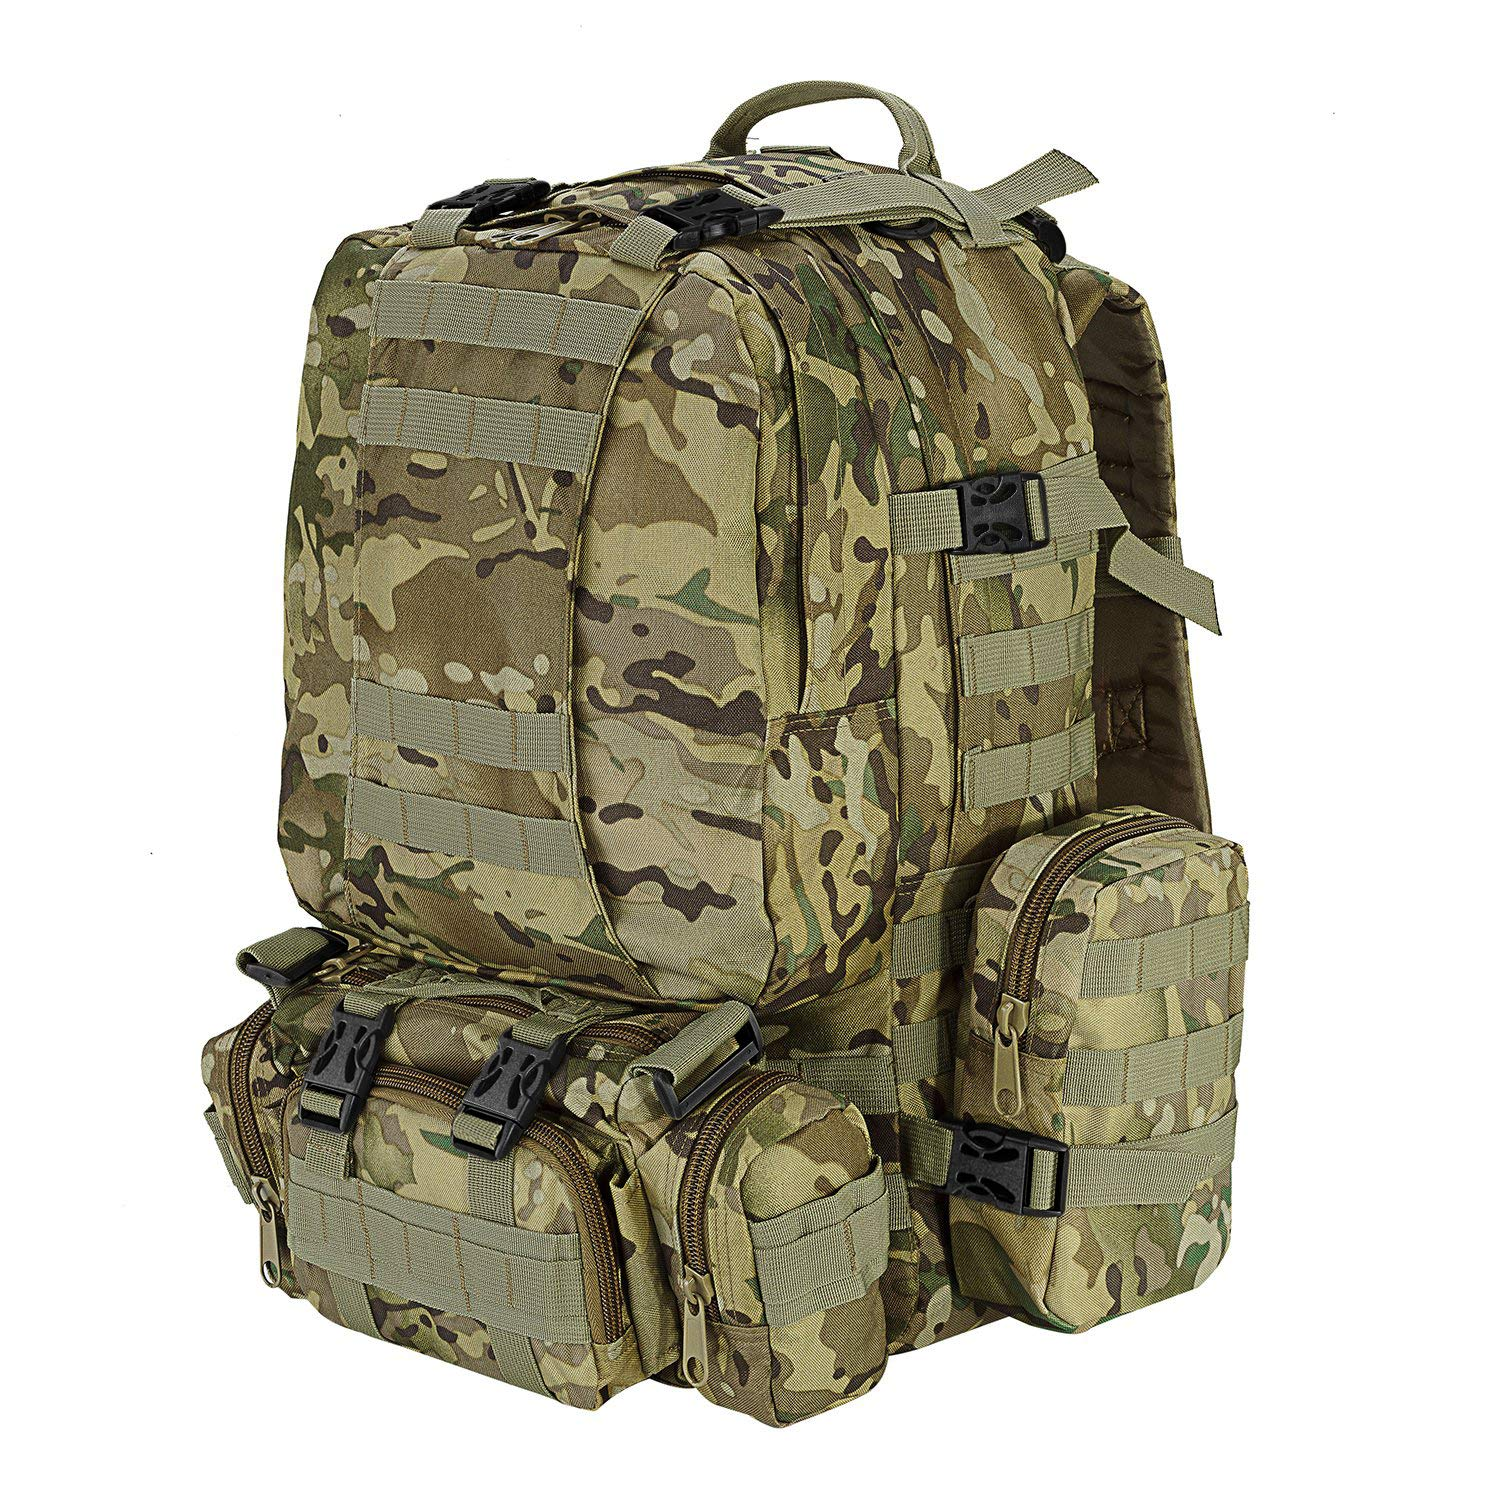 CVLIFE 60L Built-up Military Tactical Army Outdoor Backpacks Assault Combat Rucksack Heavy Bag CP by CVLIFE (Image #3)